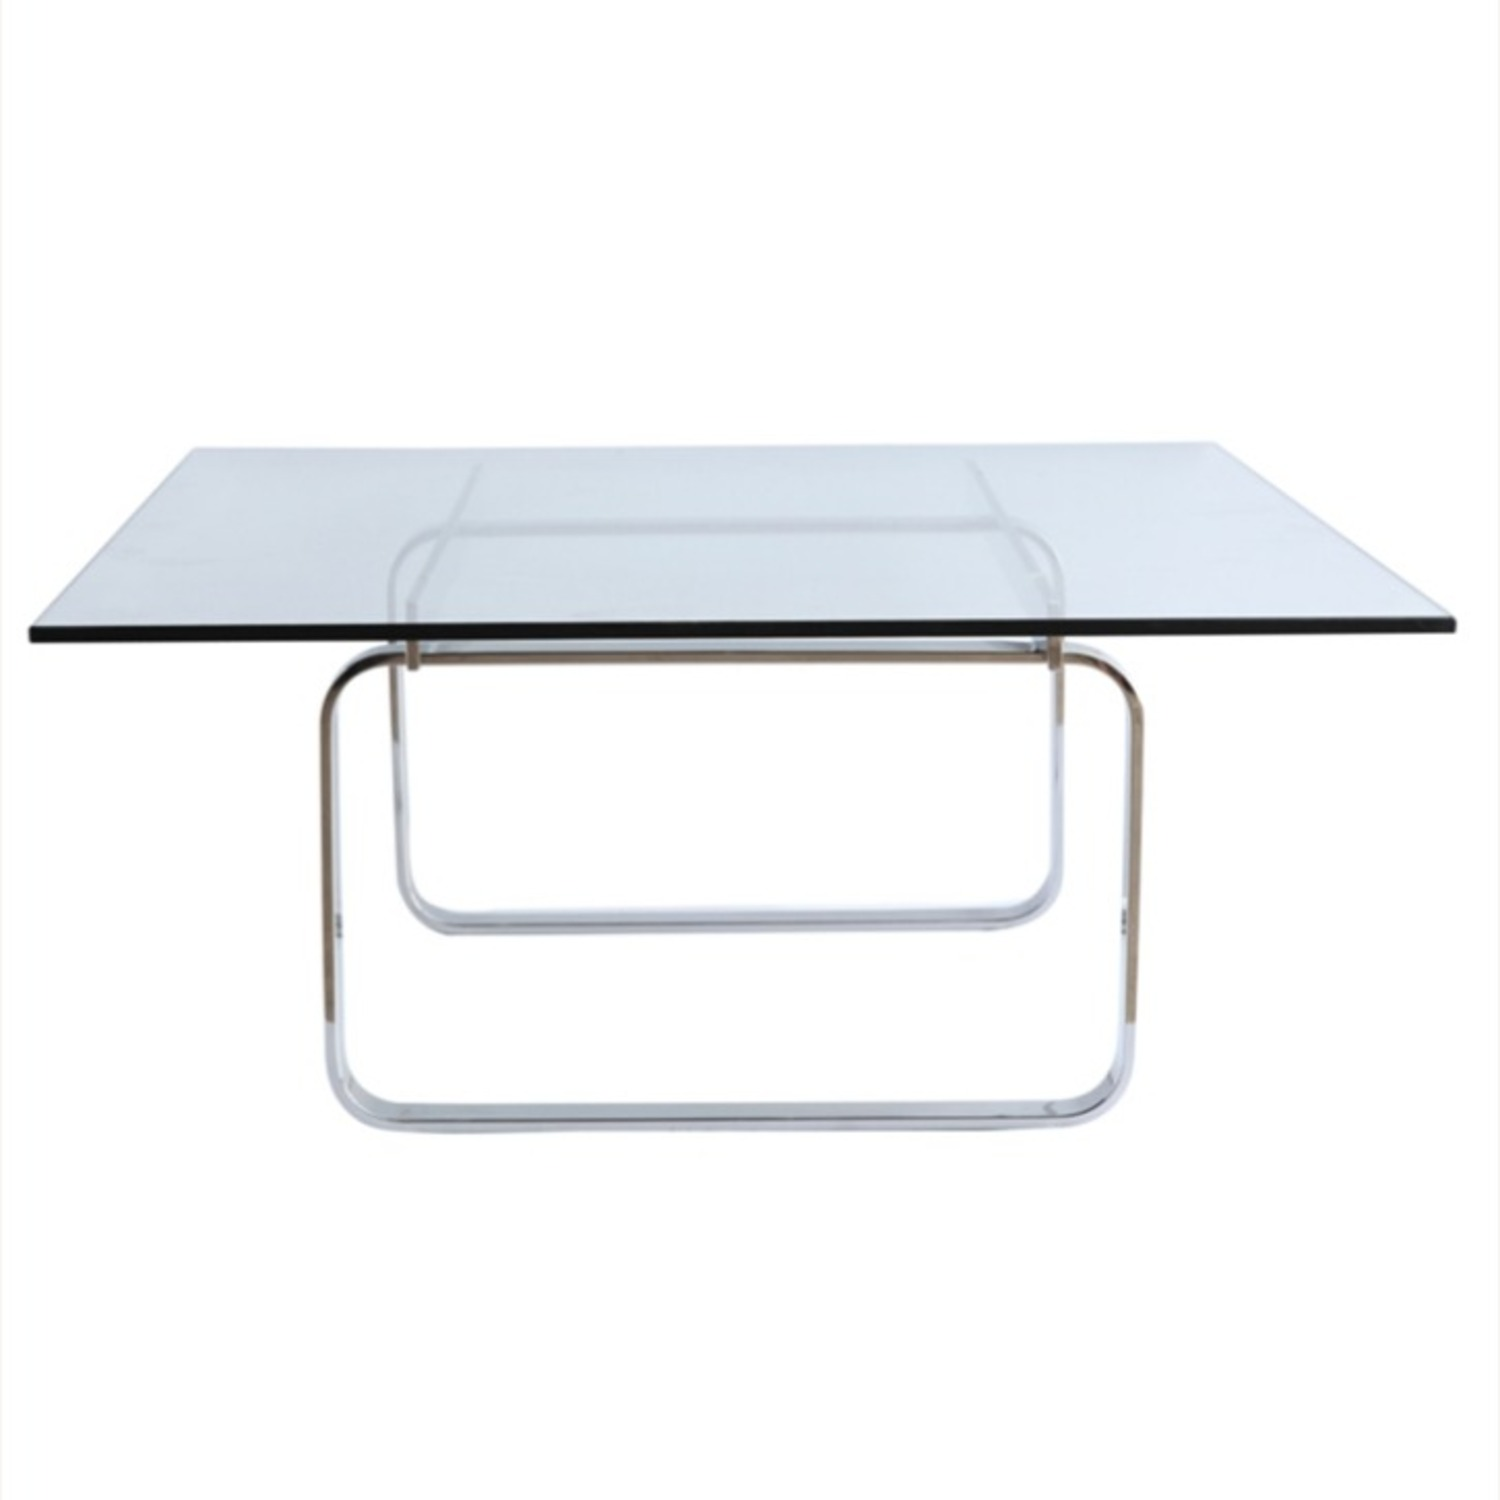 Coffee Table In Clear Stainless Steel - image-4